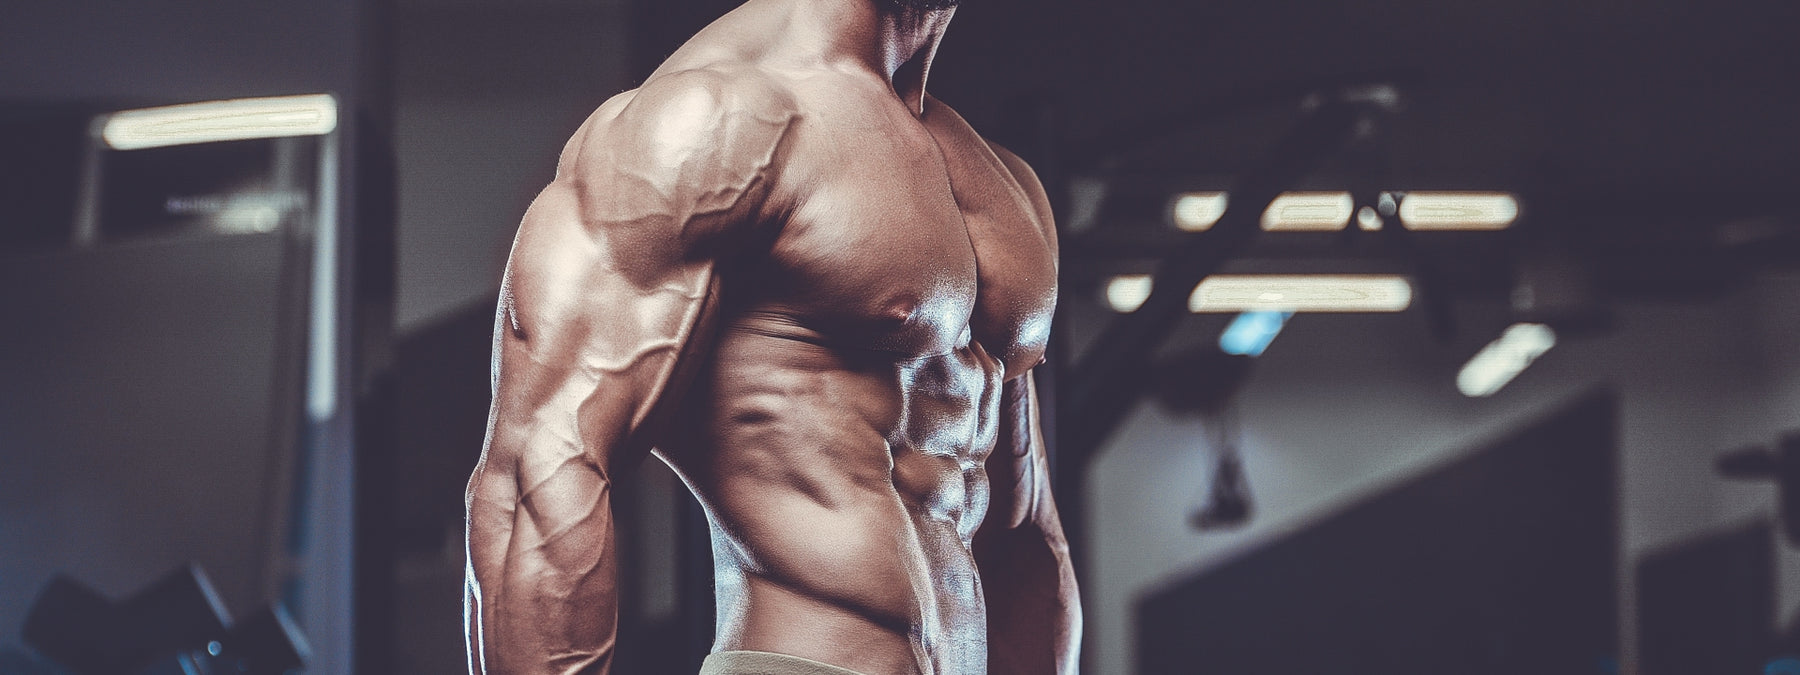 Build Strength With This 3 Day Powerbuilding Program